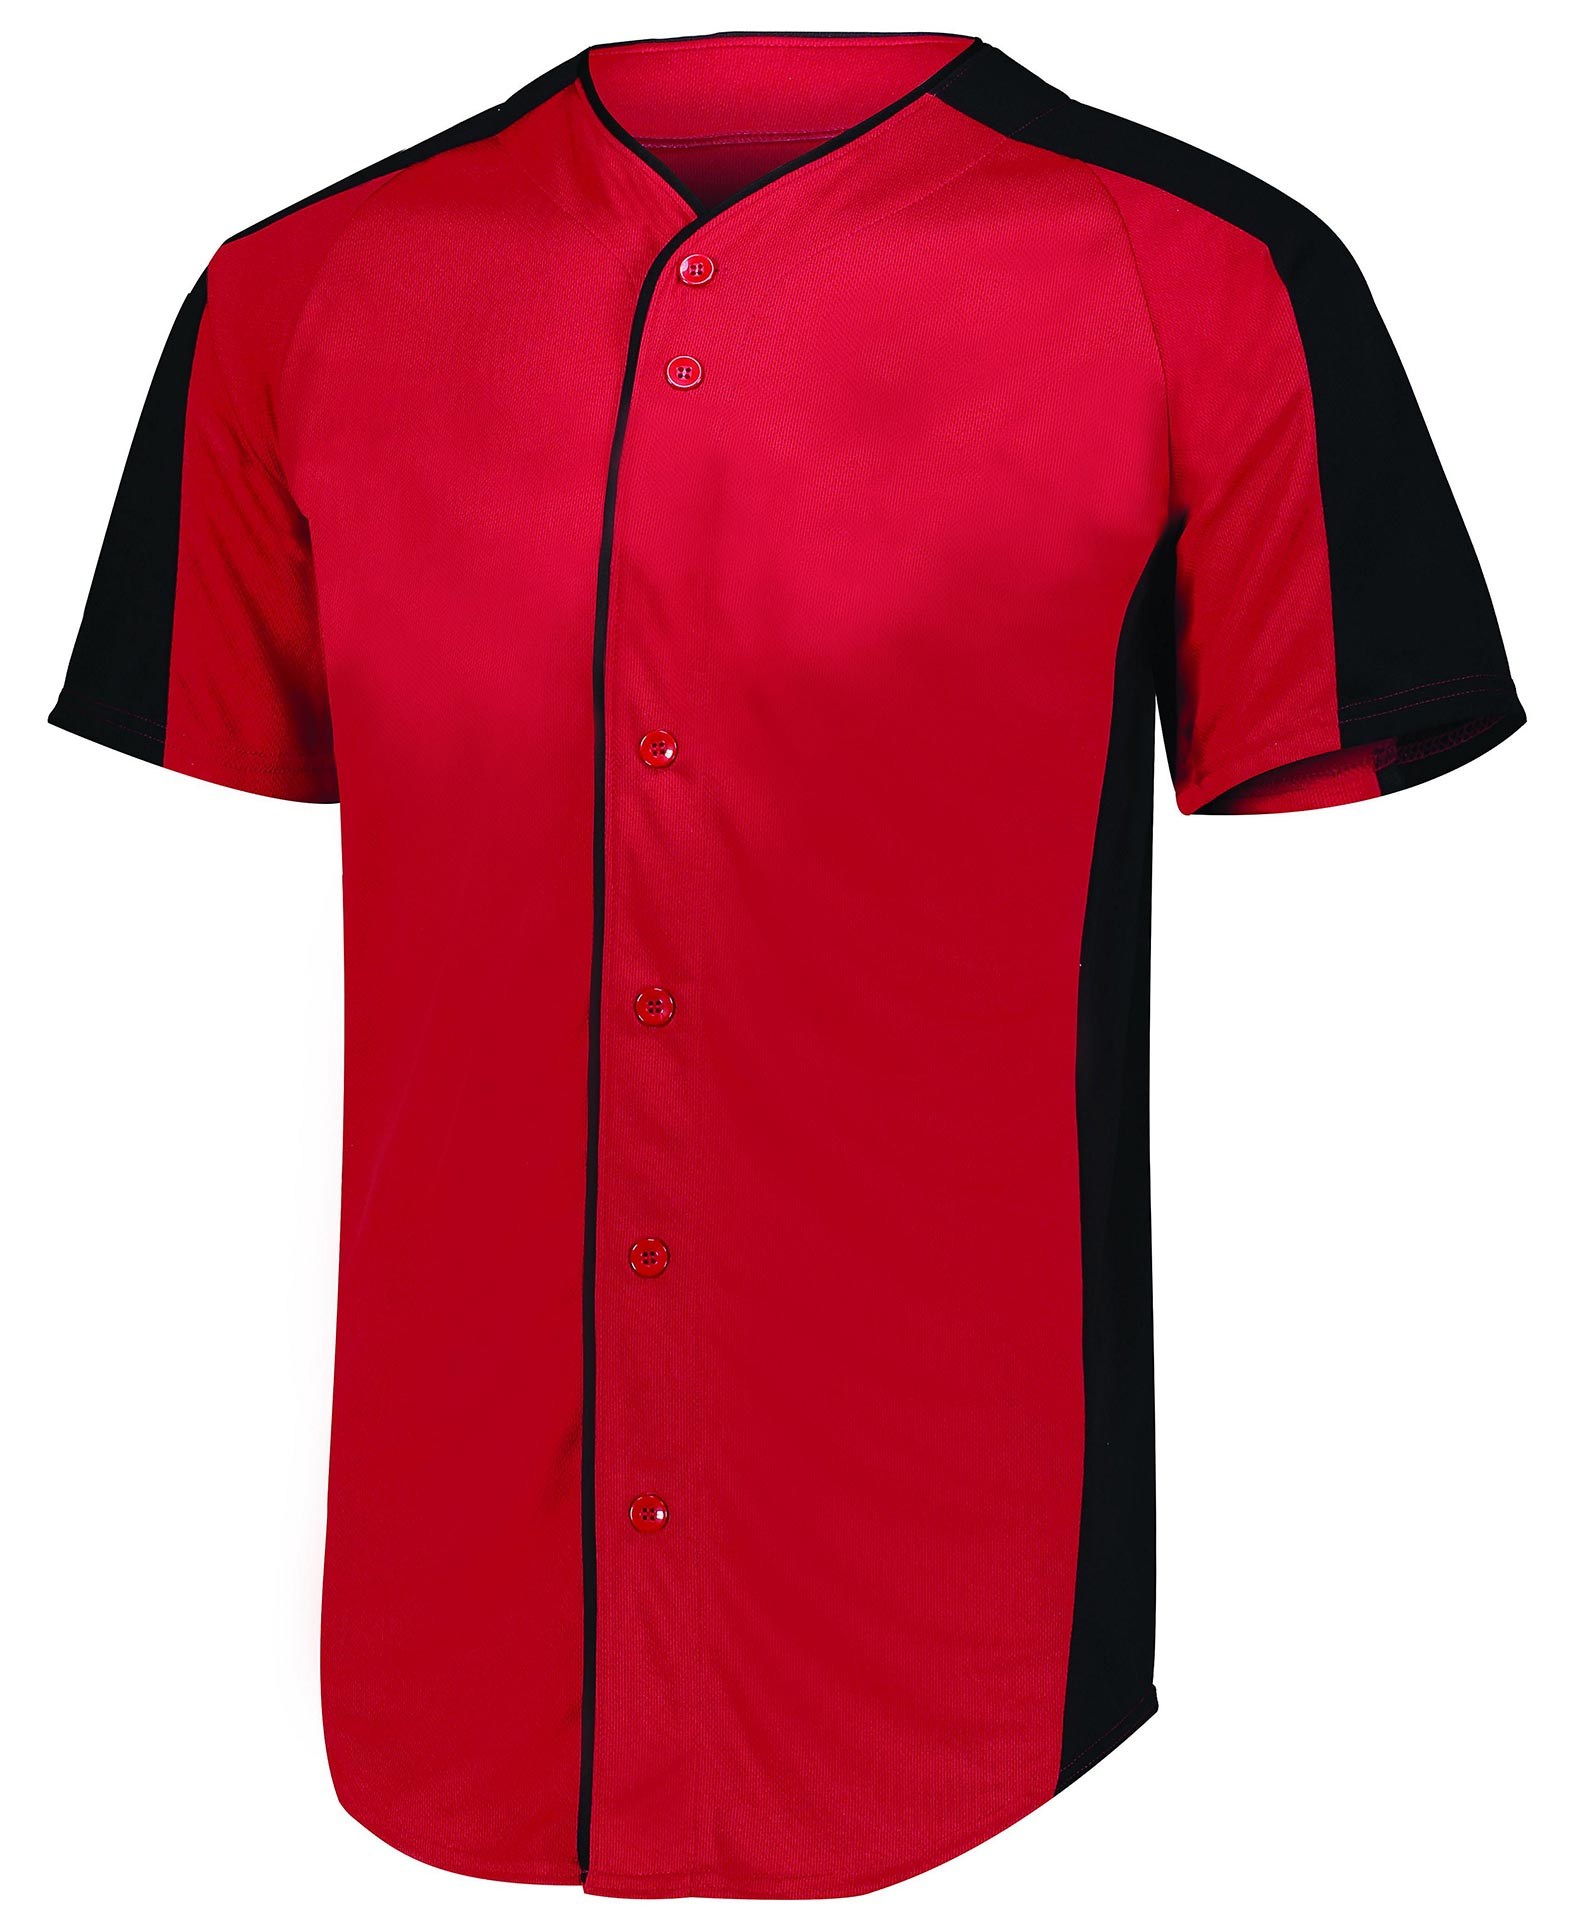 Augusta Youth Full Button Baseball Jersey